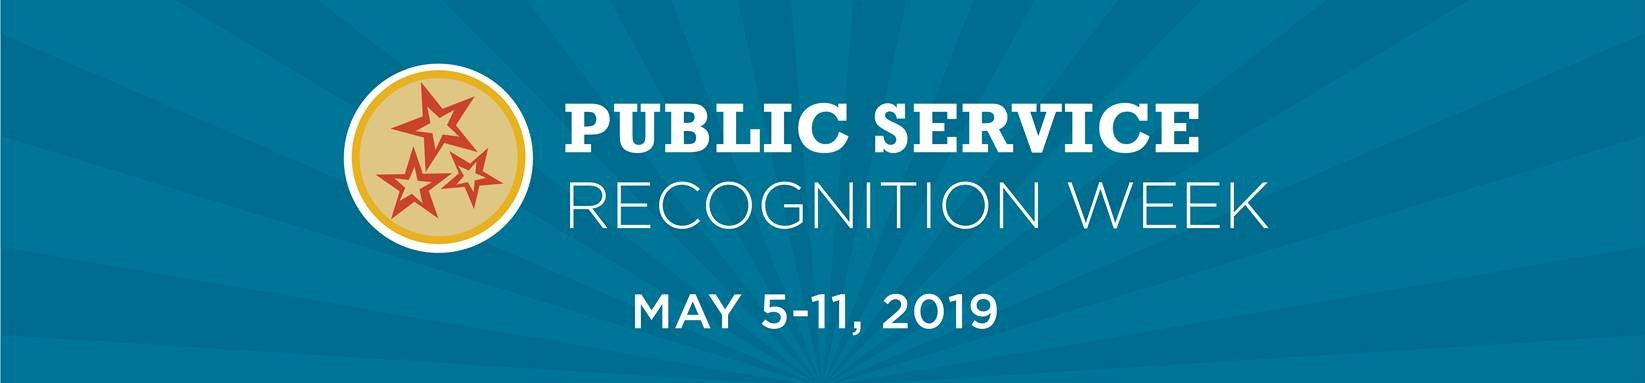 Public service recognition week 2019 is celebrated from May 5th to May 11th.